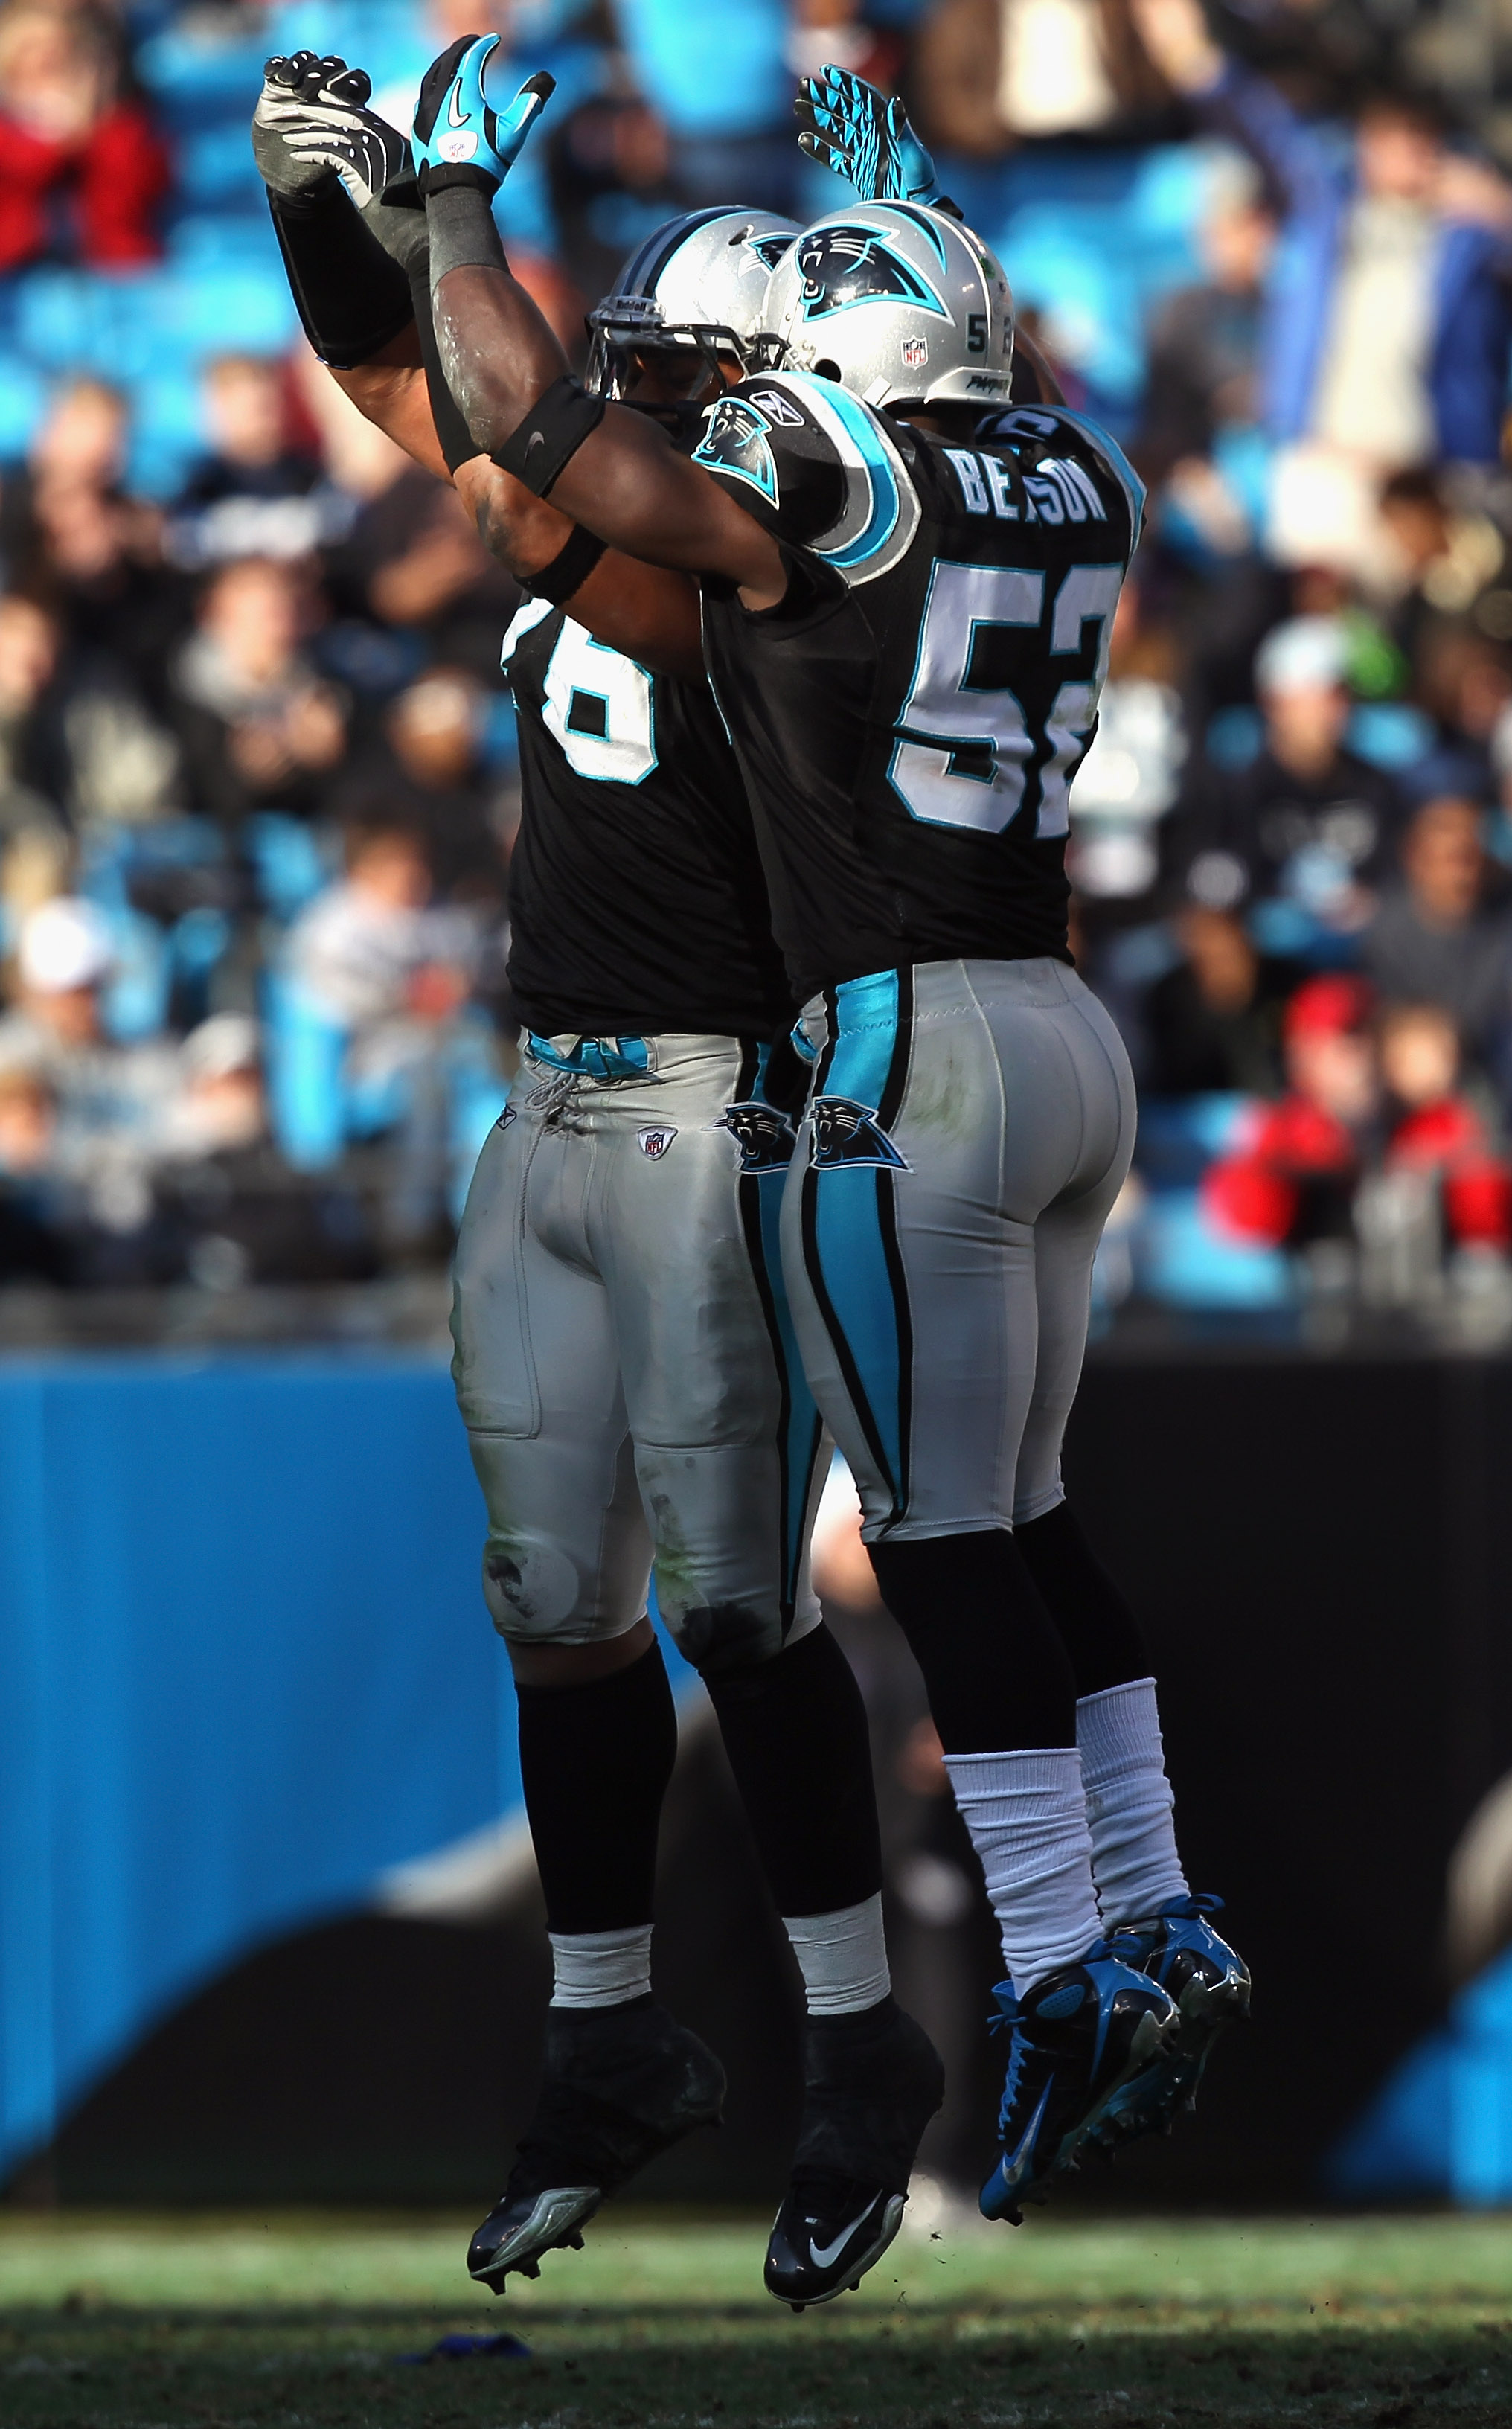 CHARLOTTE, NC - DECEMBER 19:  Teammates Jon Beason #52 and Greg Hardy of the Carolina Panthers celebrate after a defensive stop during their game against the Arizona Cardinals at Bank of America Stadium on December 19, 2010 in Charlotte, North Carolina.